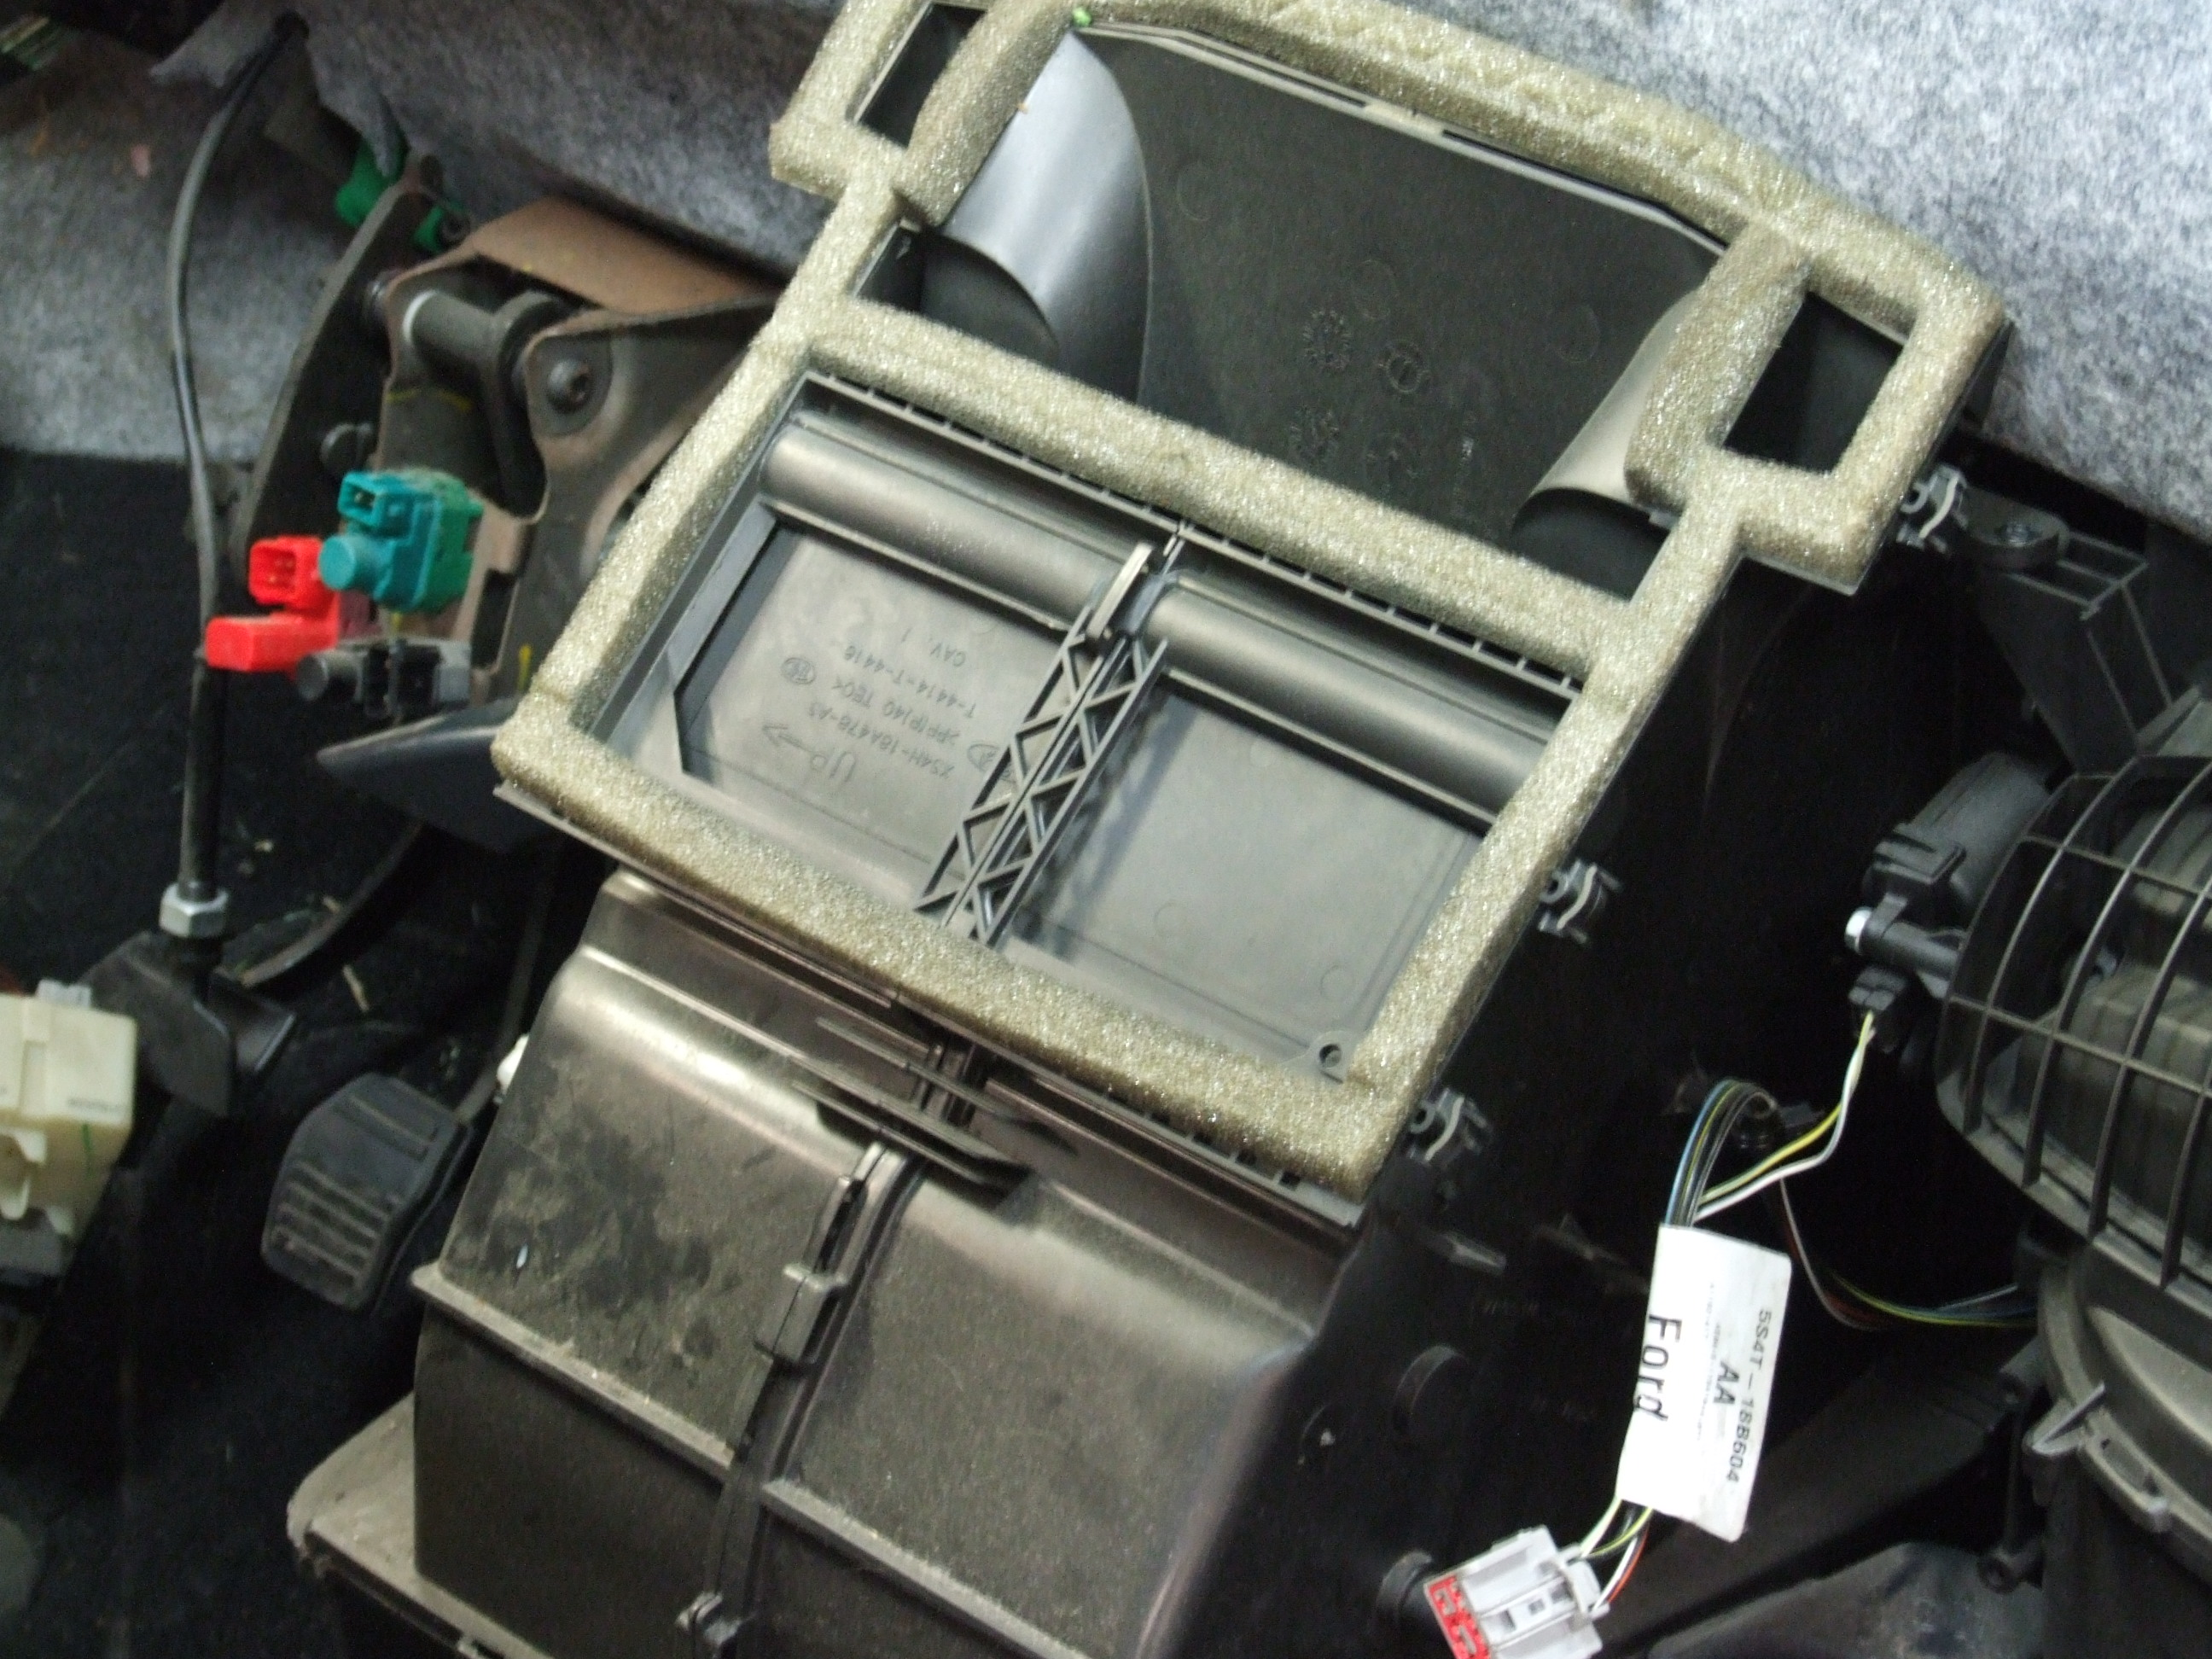 Ford Focus heater box